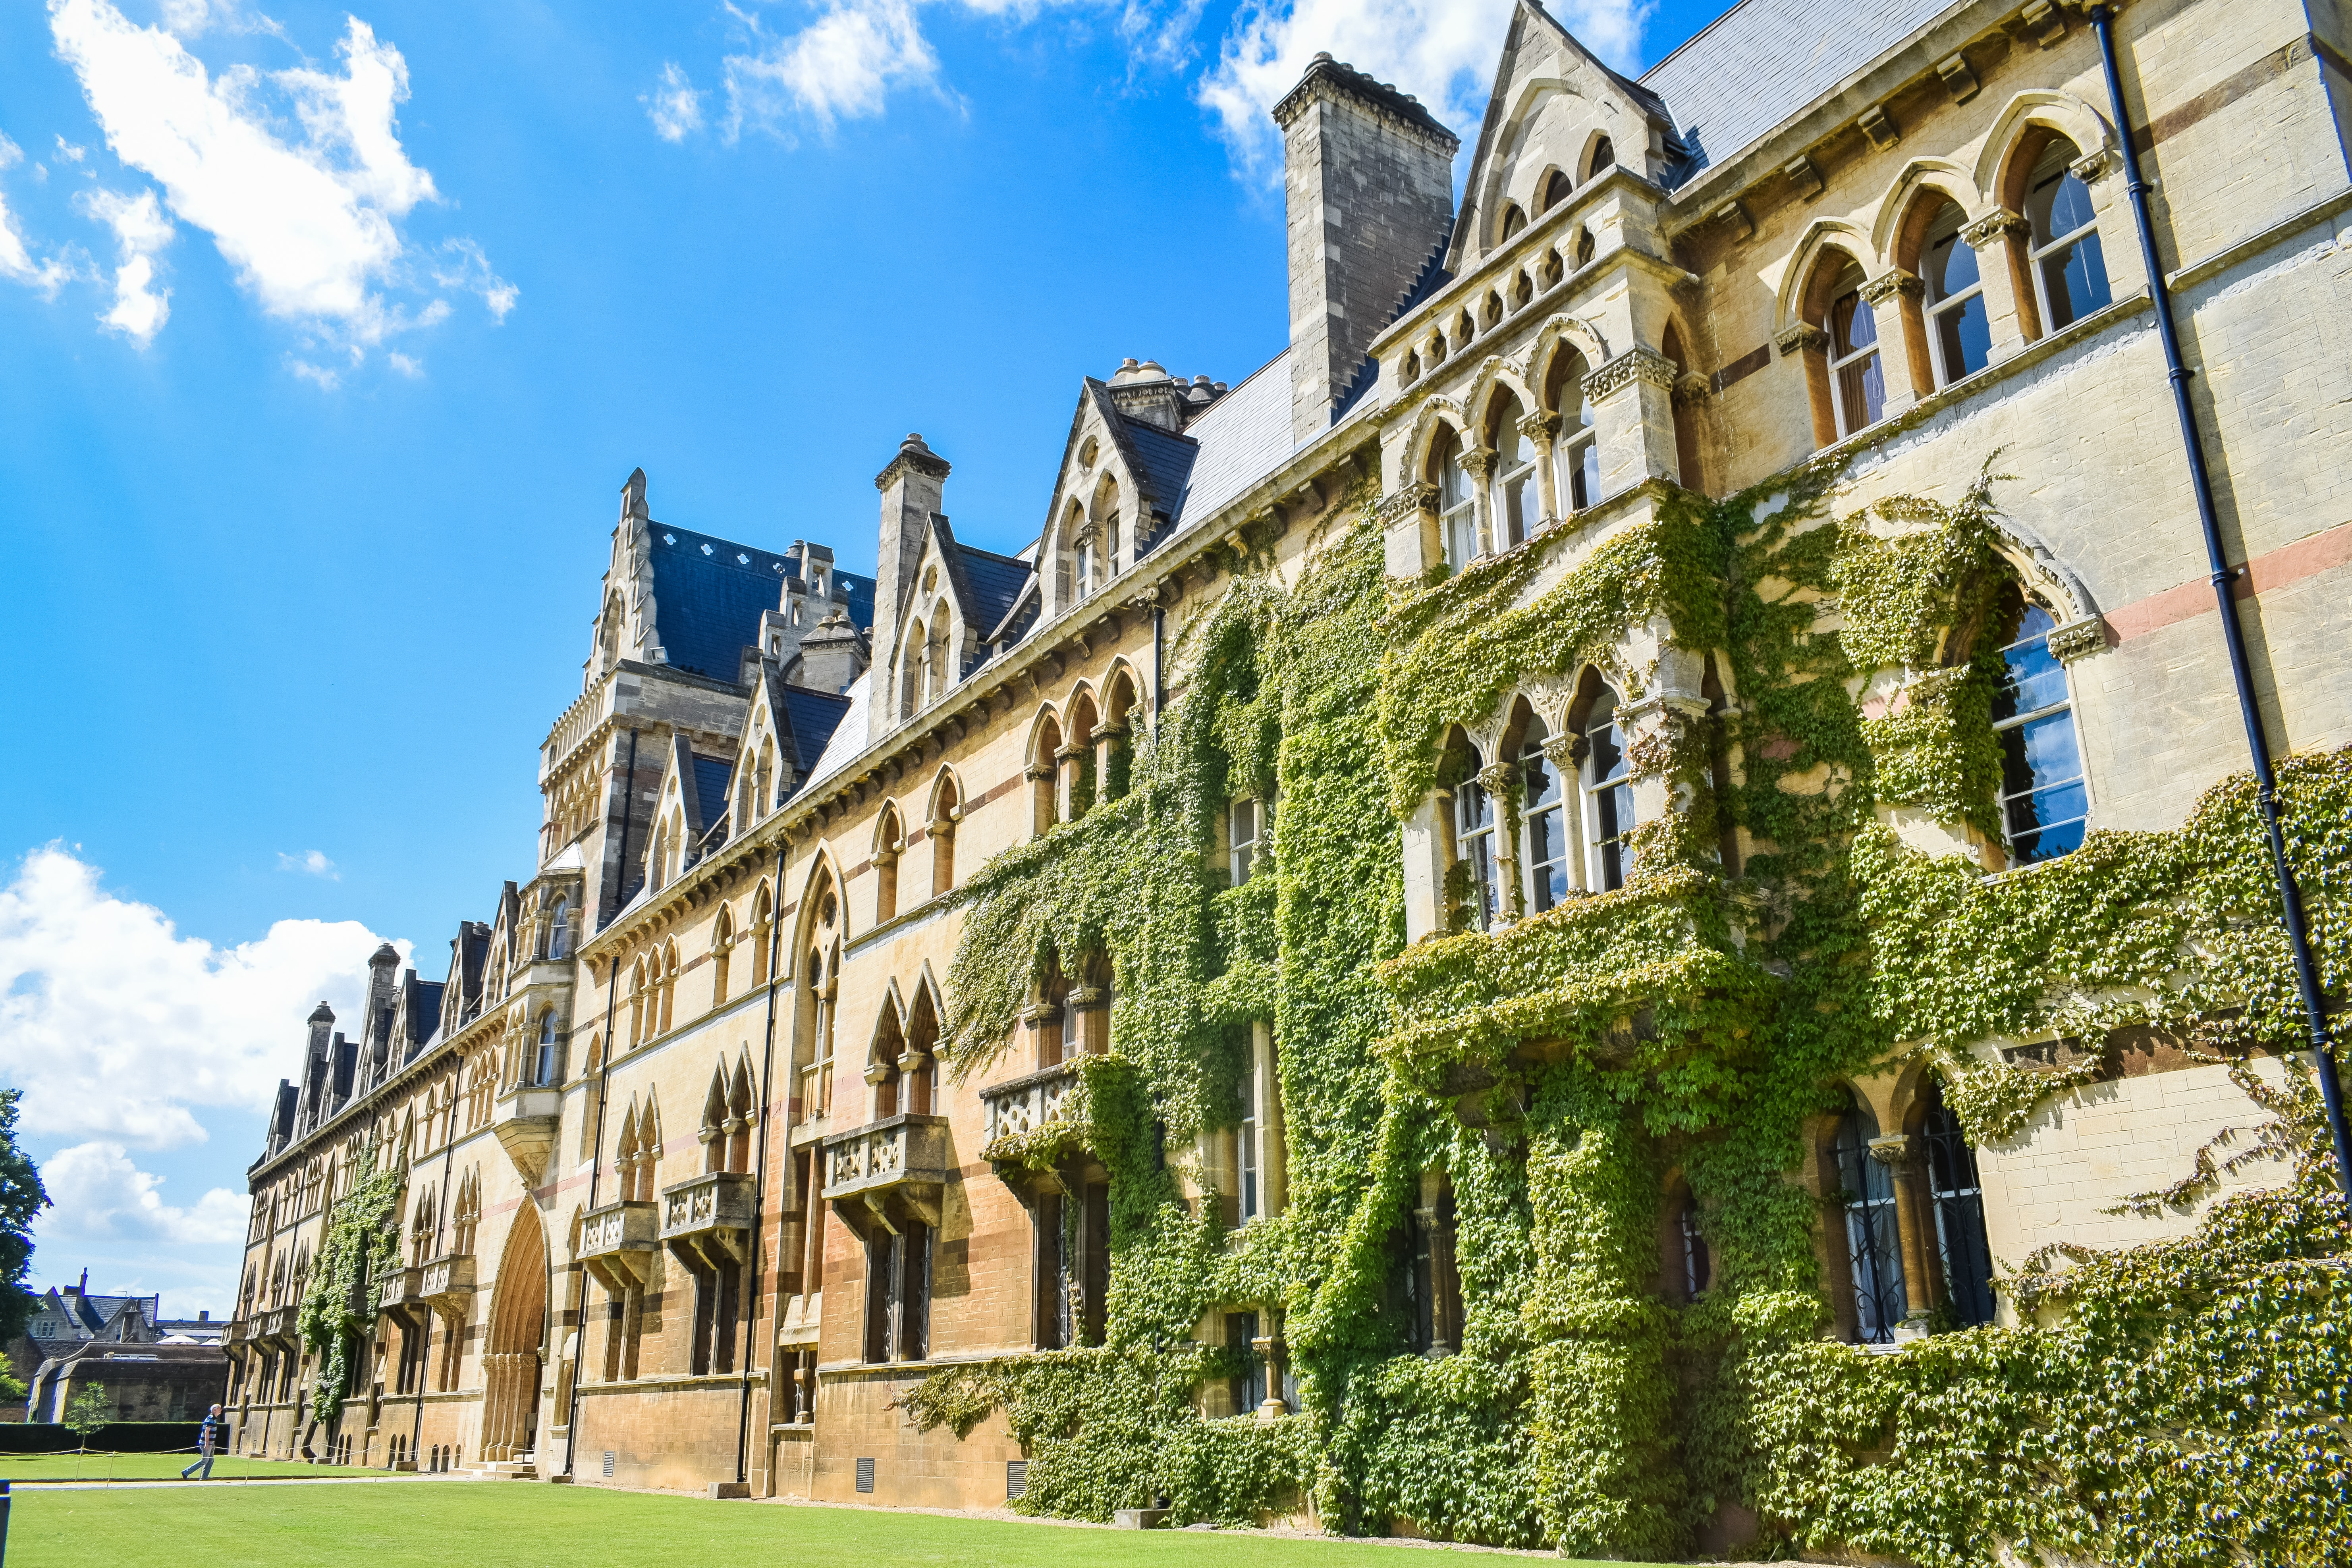 an ivy-covered wall at oxford university